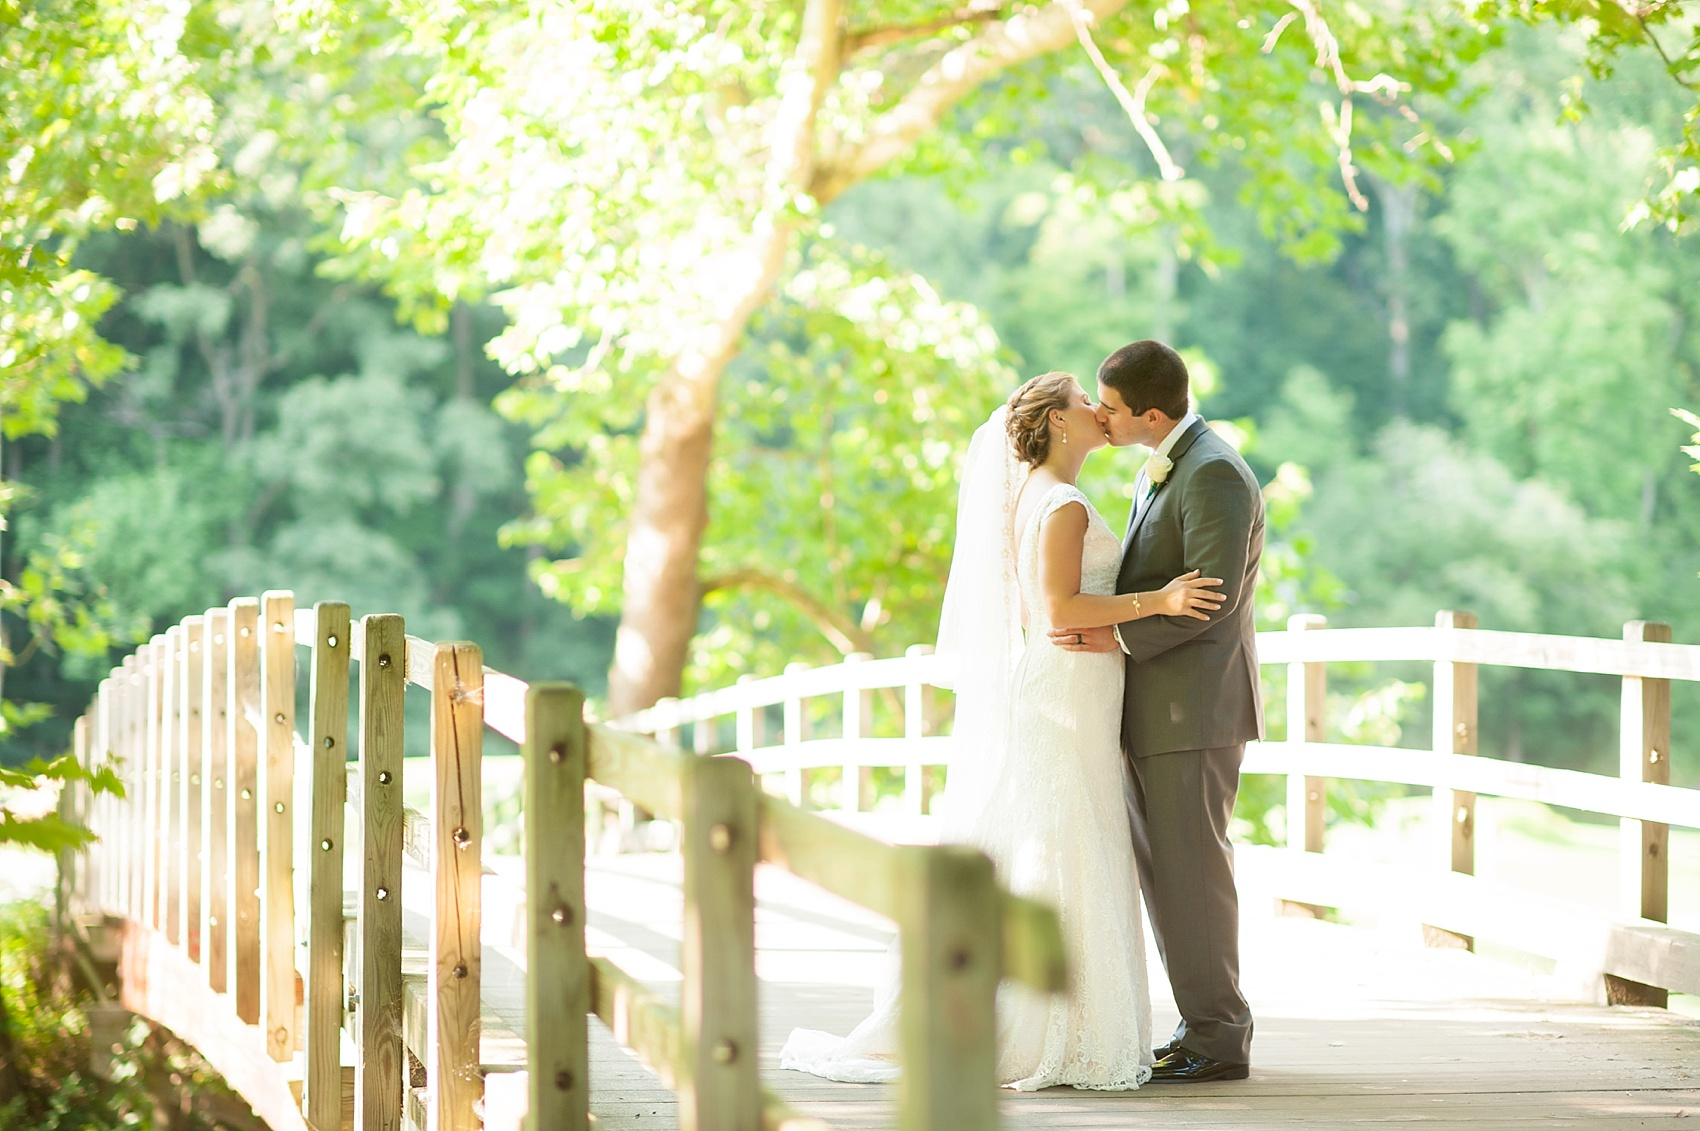 Hollow Brook Golf Club summer wedding photos in Cortlandt Manor, New York, by Mikkel Paige Photography.